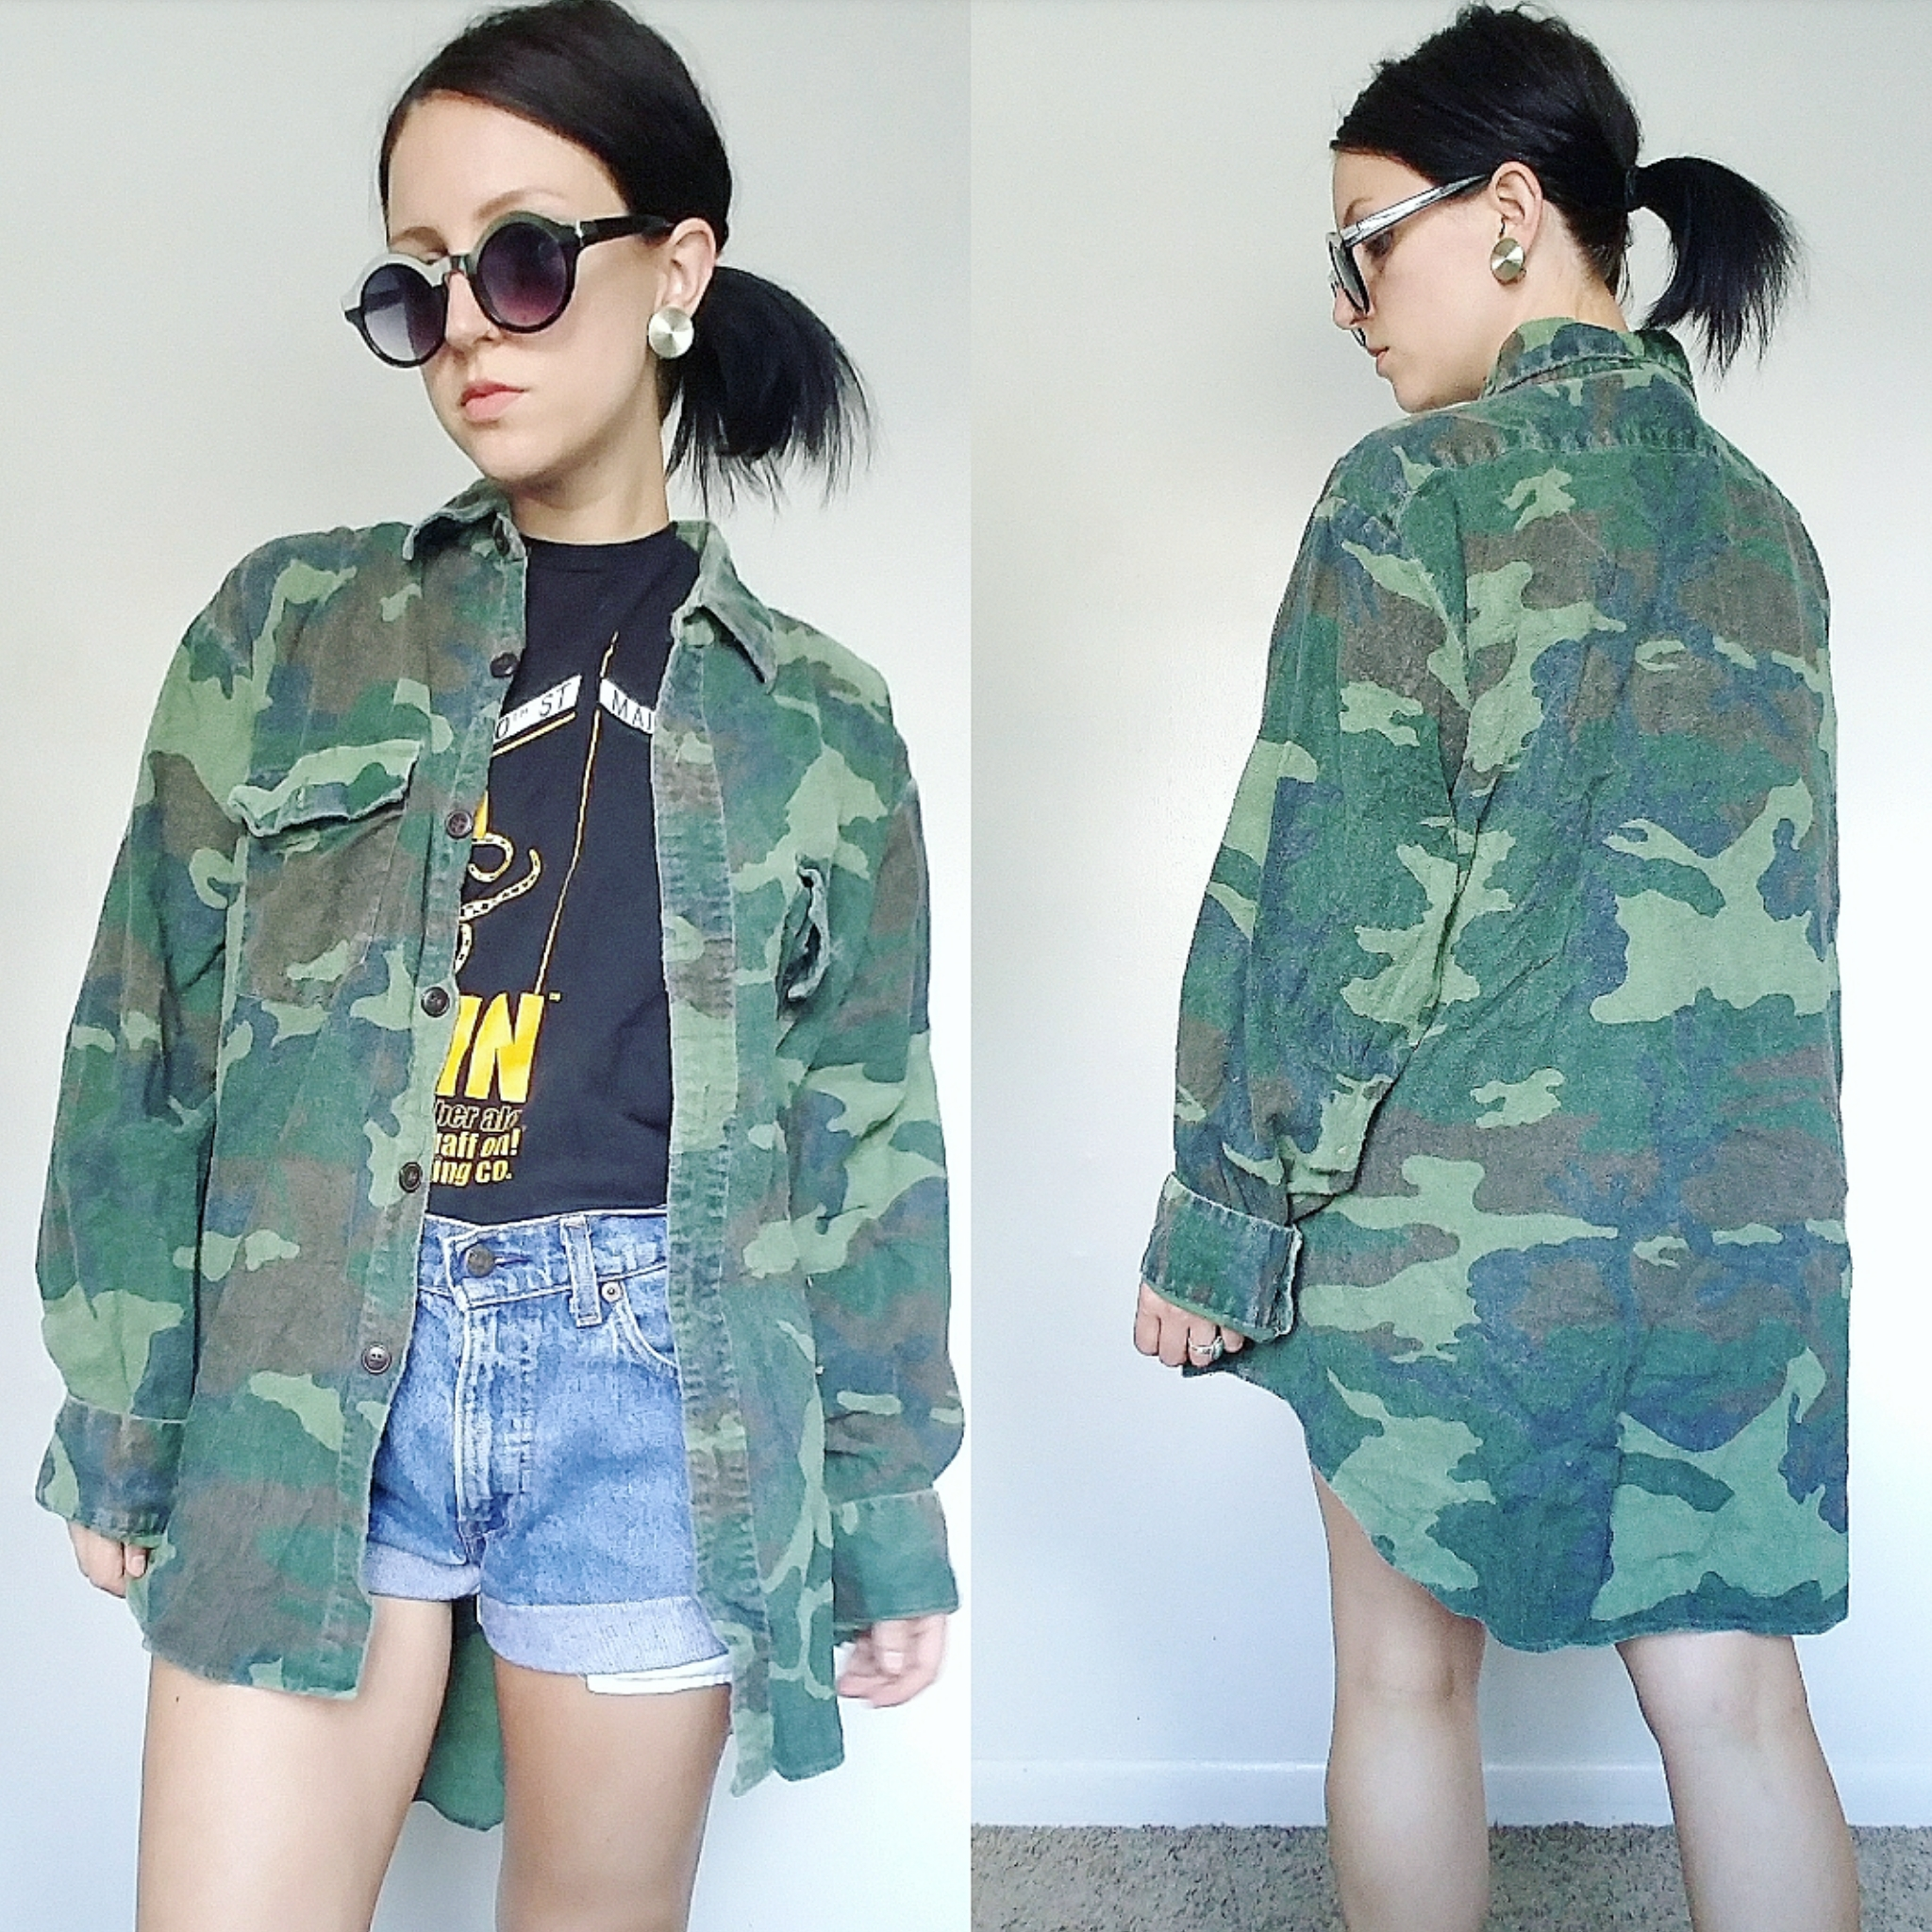 60c926f2 1970's ARMY Camo Shirt - Vintage Unisex Grunge Button Up Shirt on ...